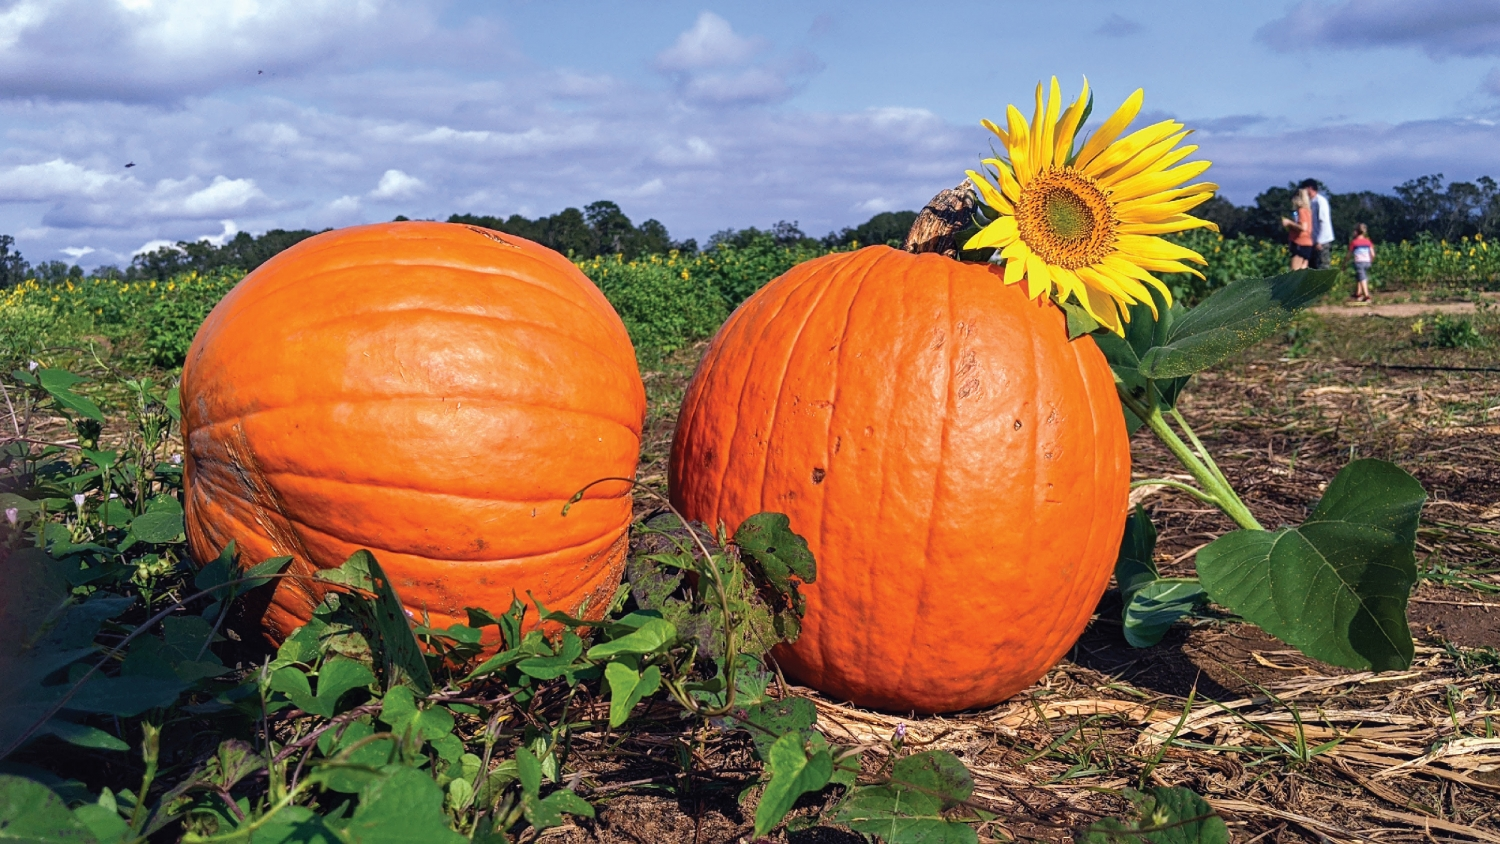 Two pumpkins in a a field with a sunflower leaning on them.